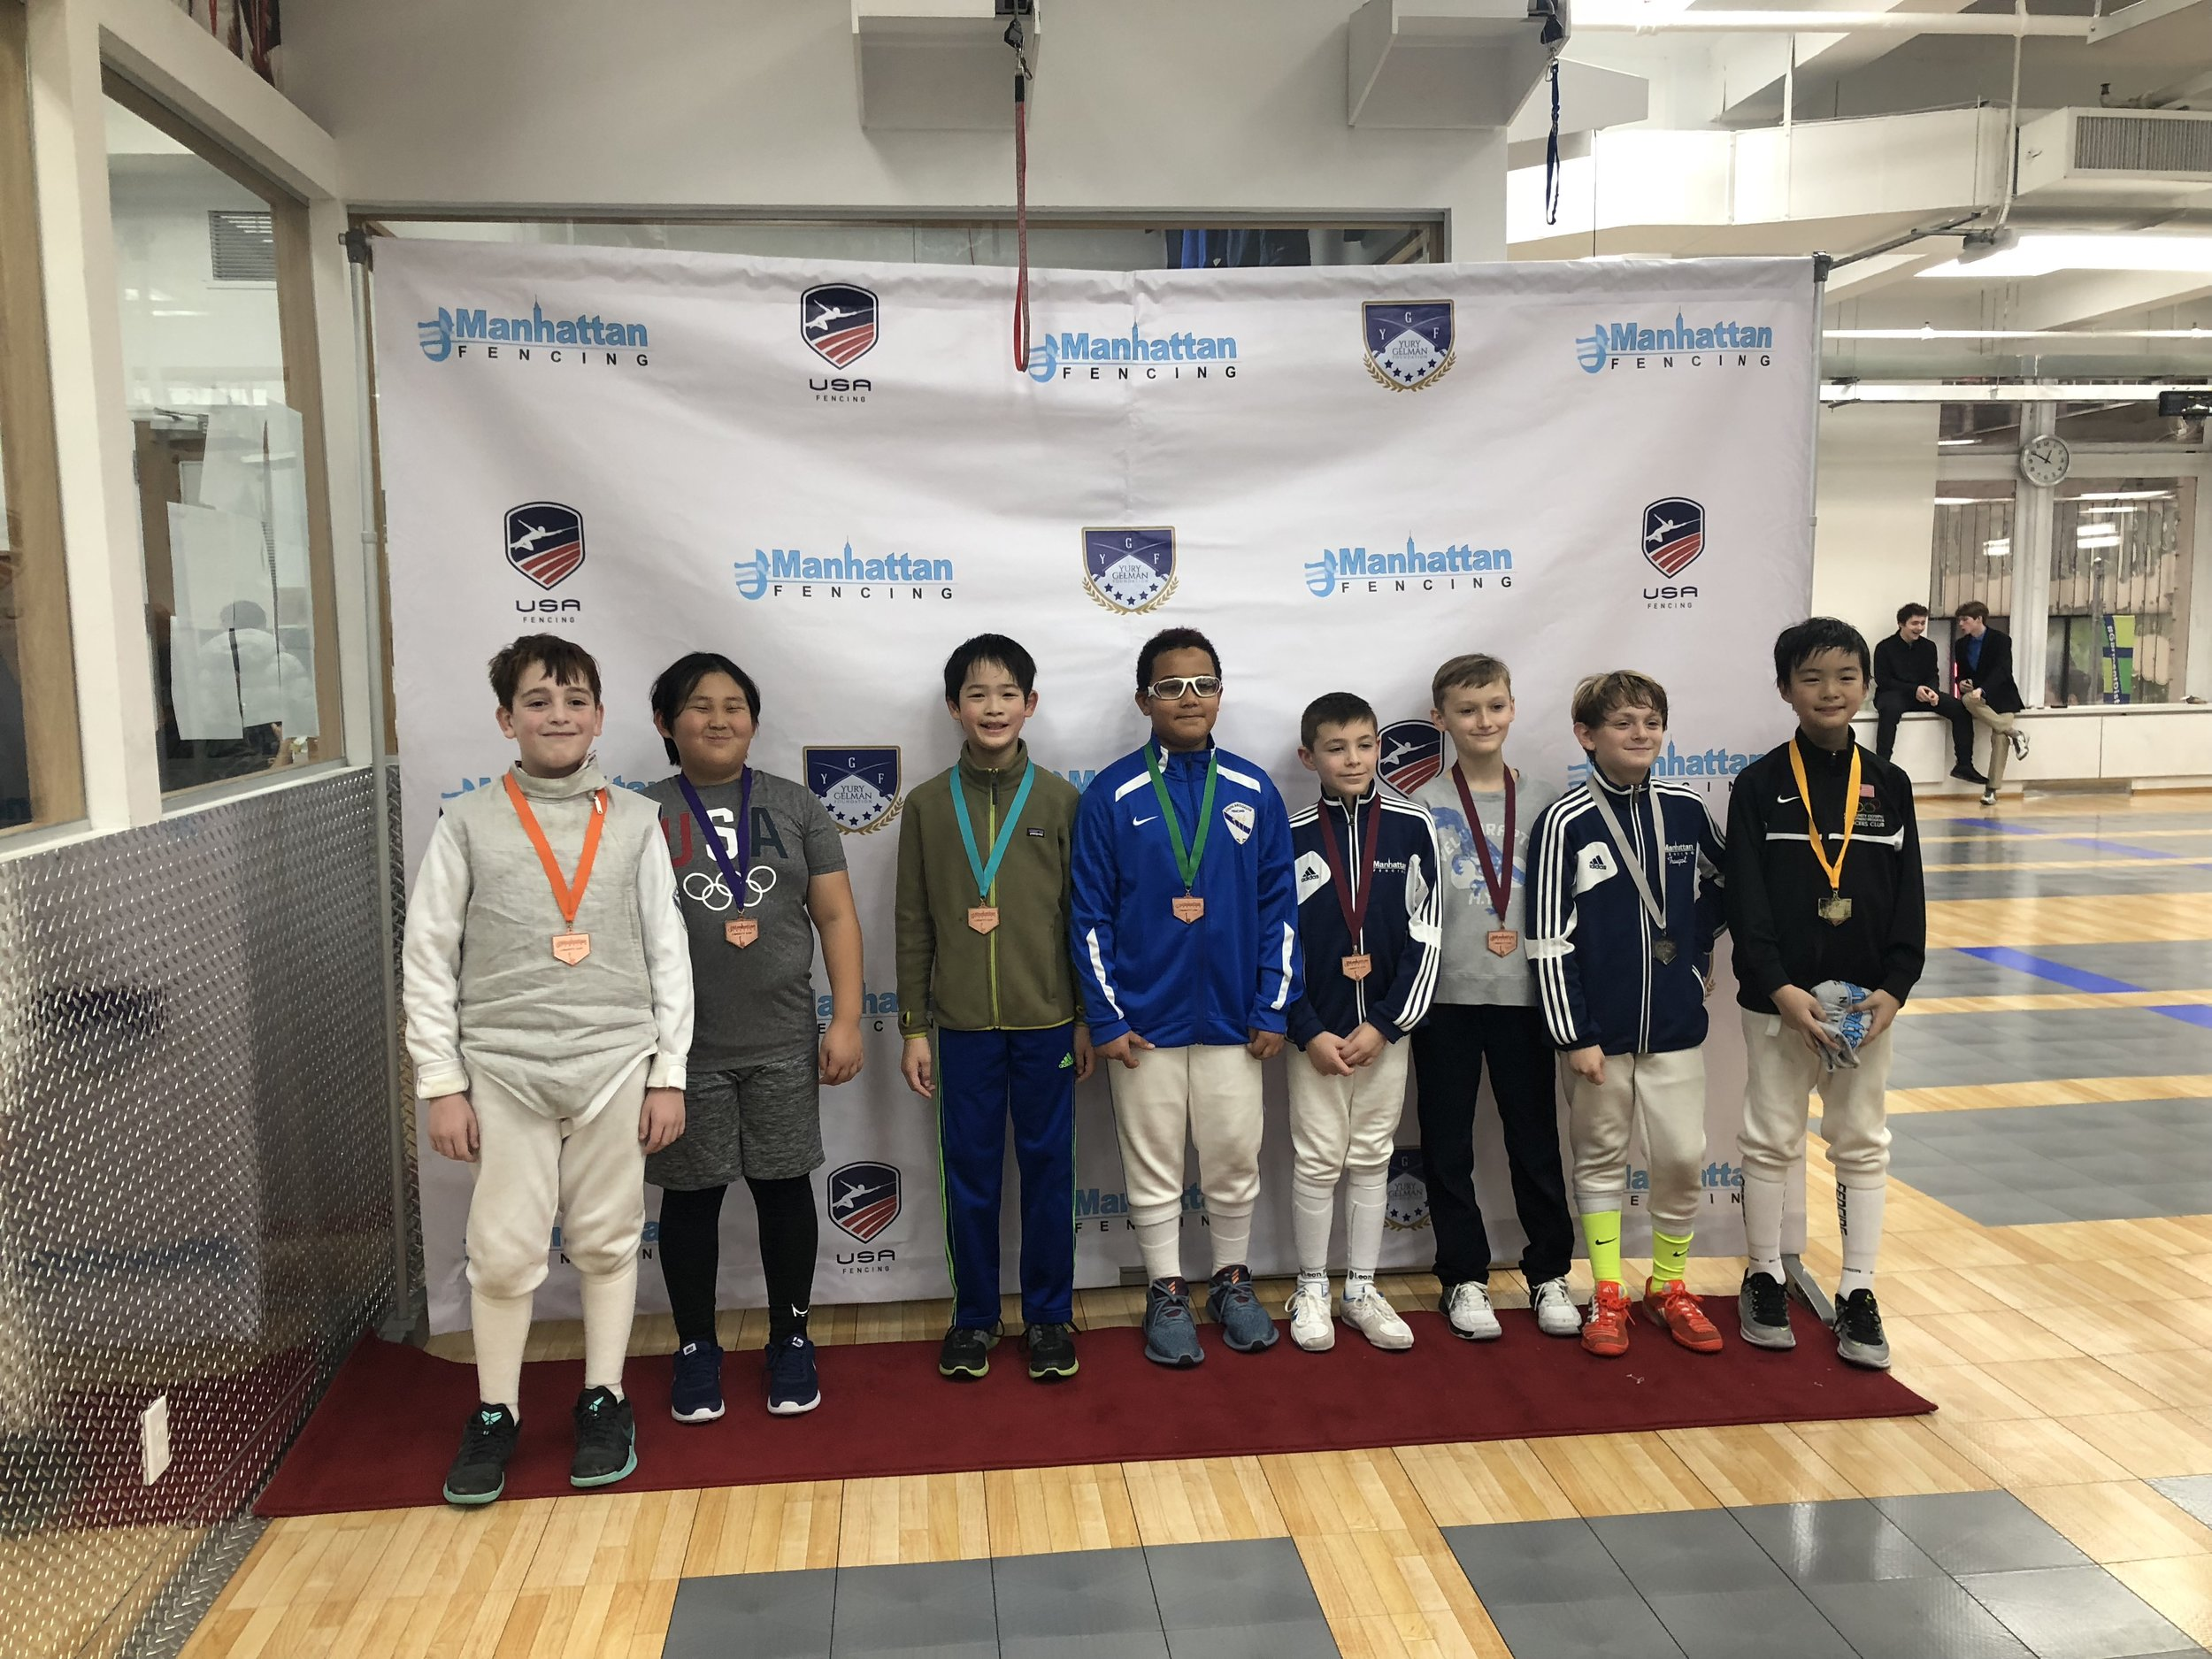 Manhattan Fencing Center Youth  Jackson Widoff-Woodson 5th place Y10 men's Robert Gofman 8th place Y10 men's December 2nd 2018